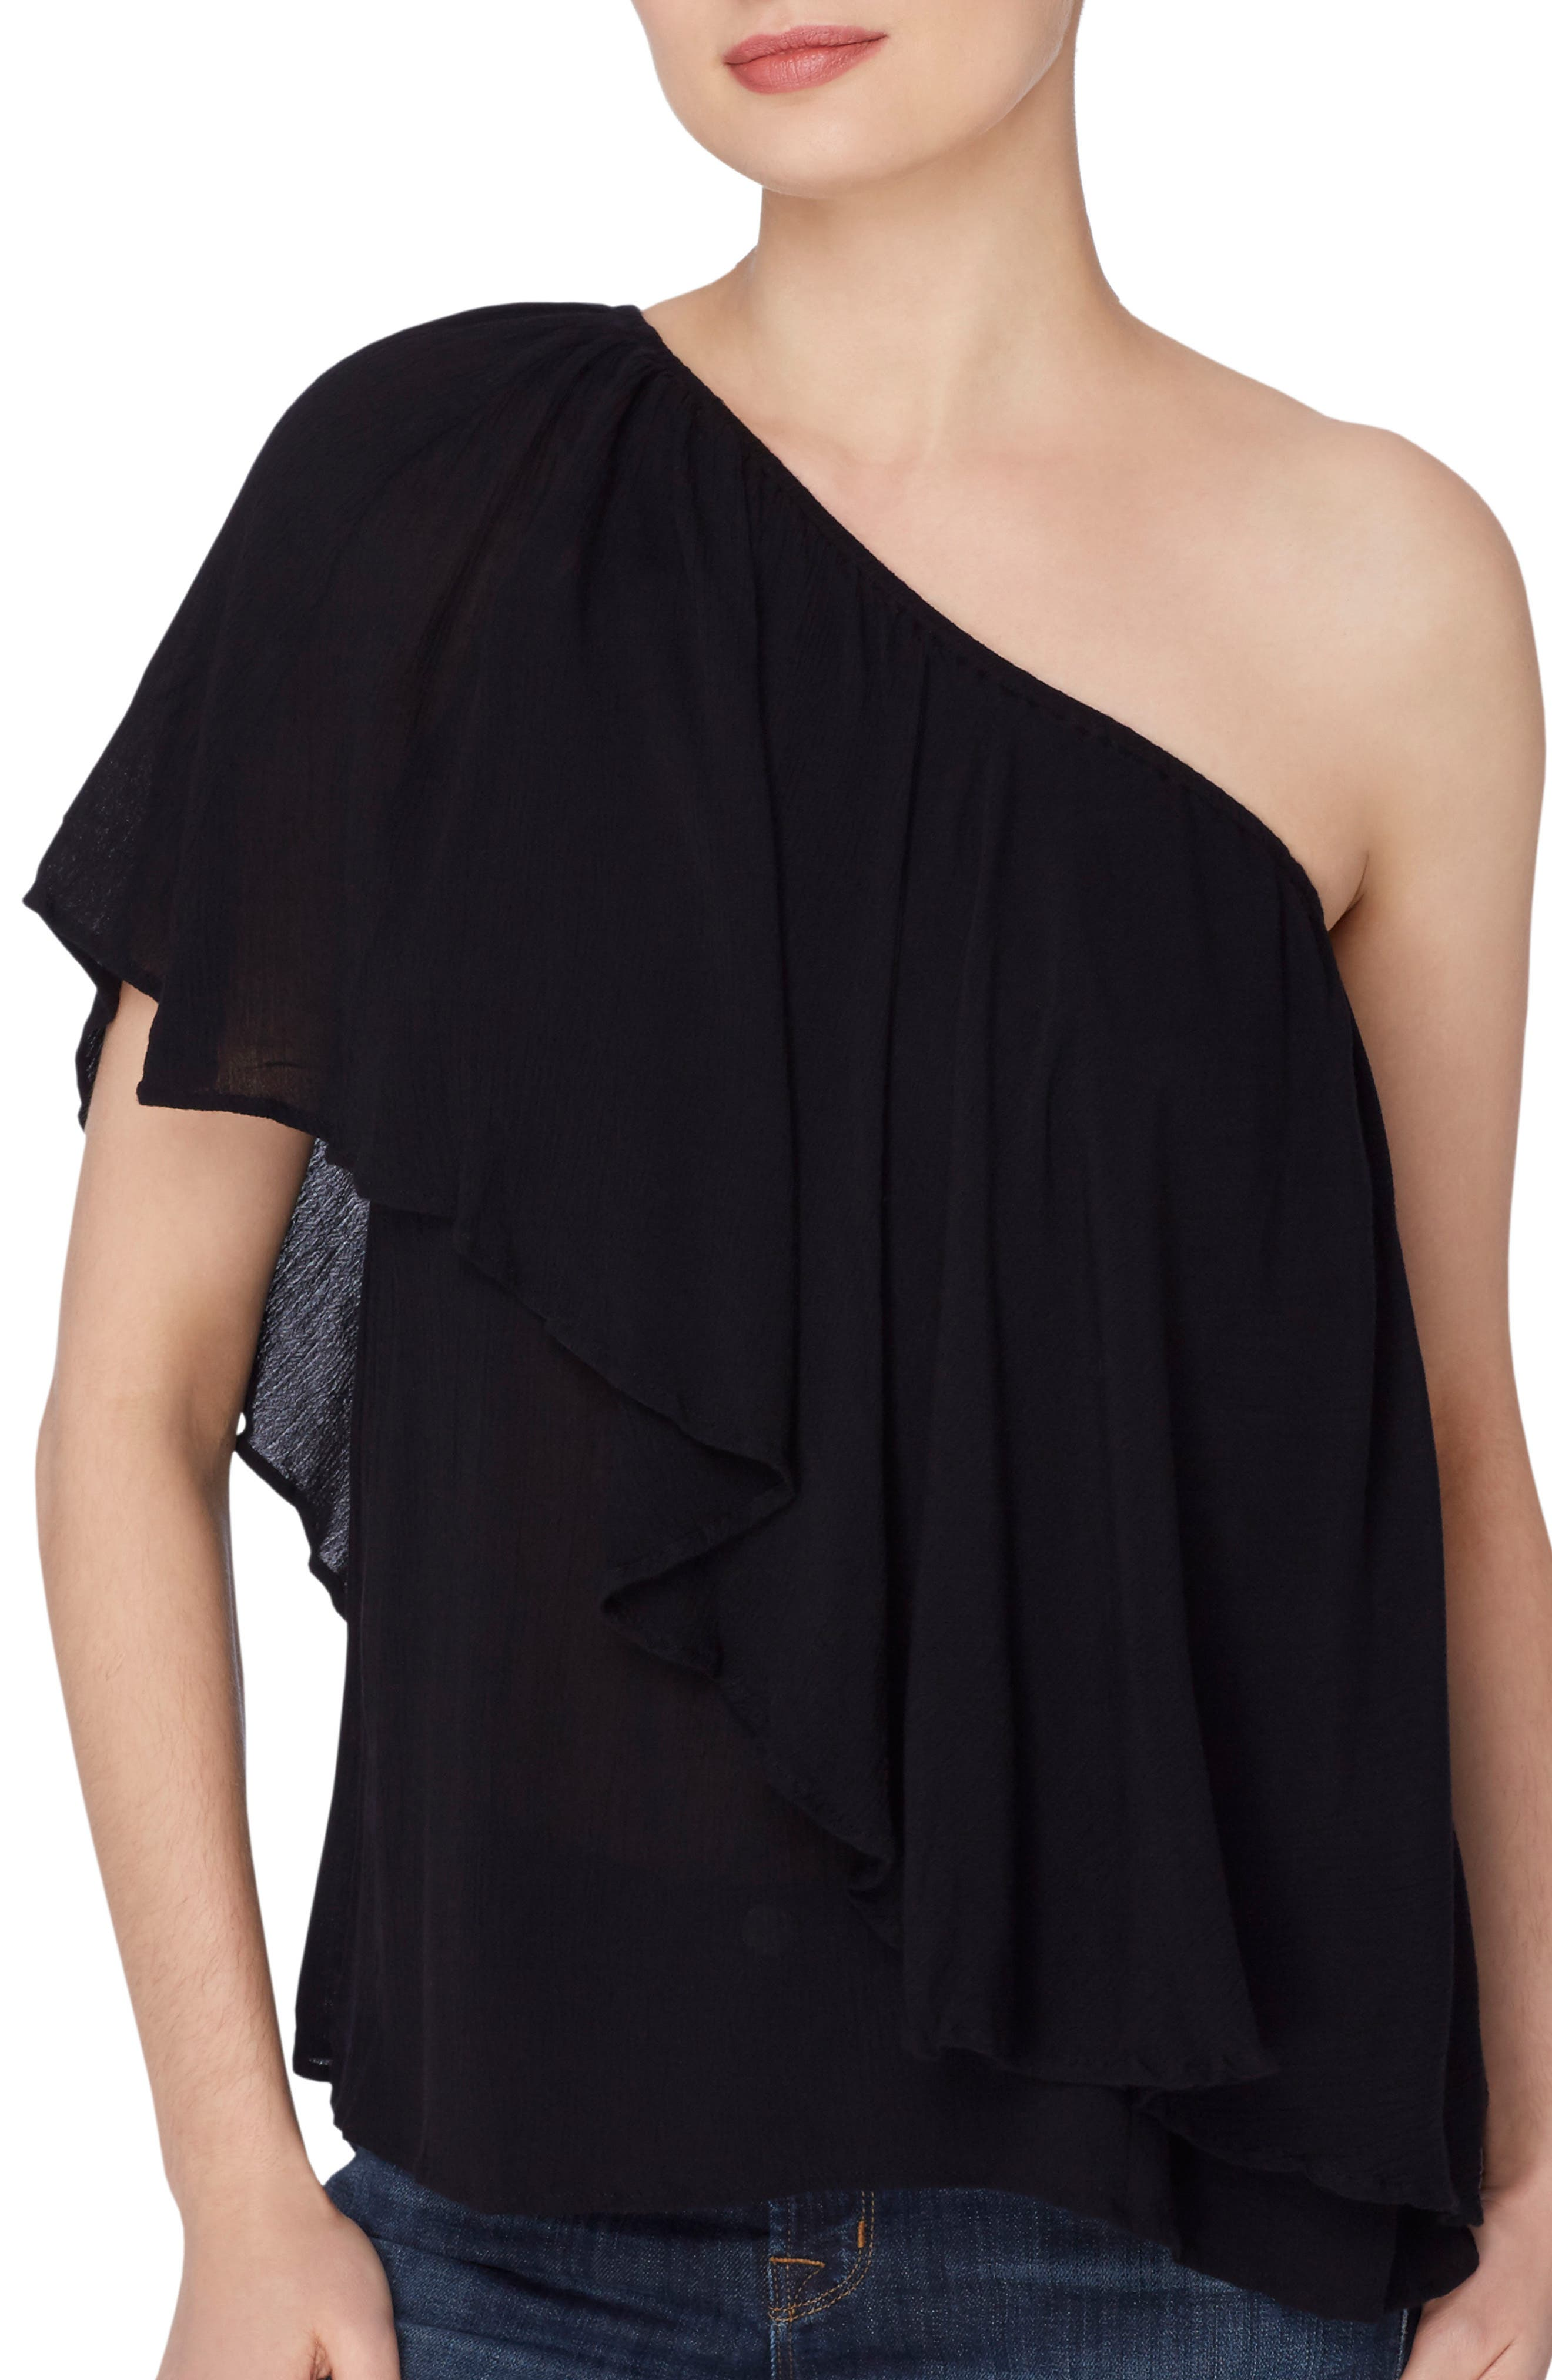 Magritte One-Shoulder Top,                             Main thumbnail 1, color,